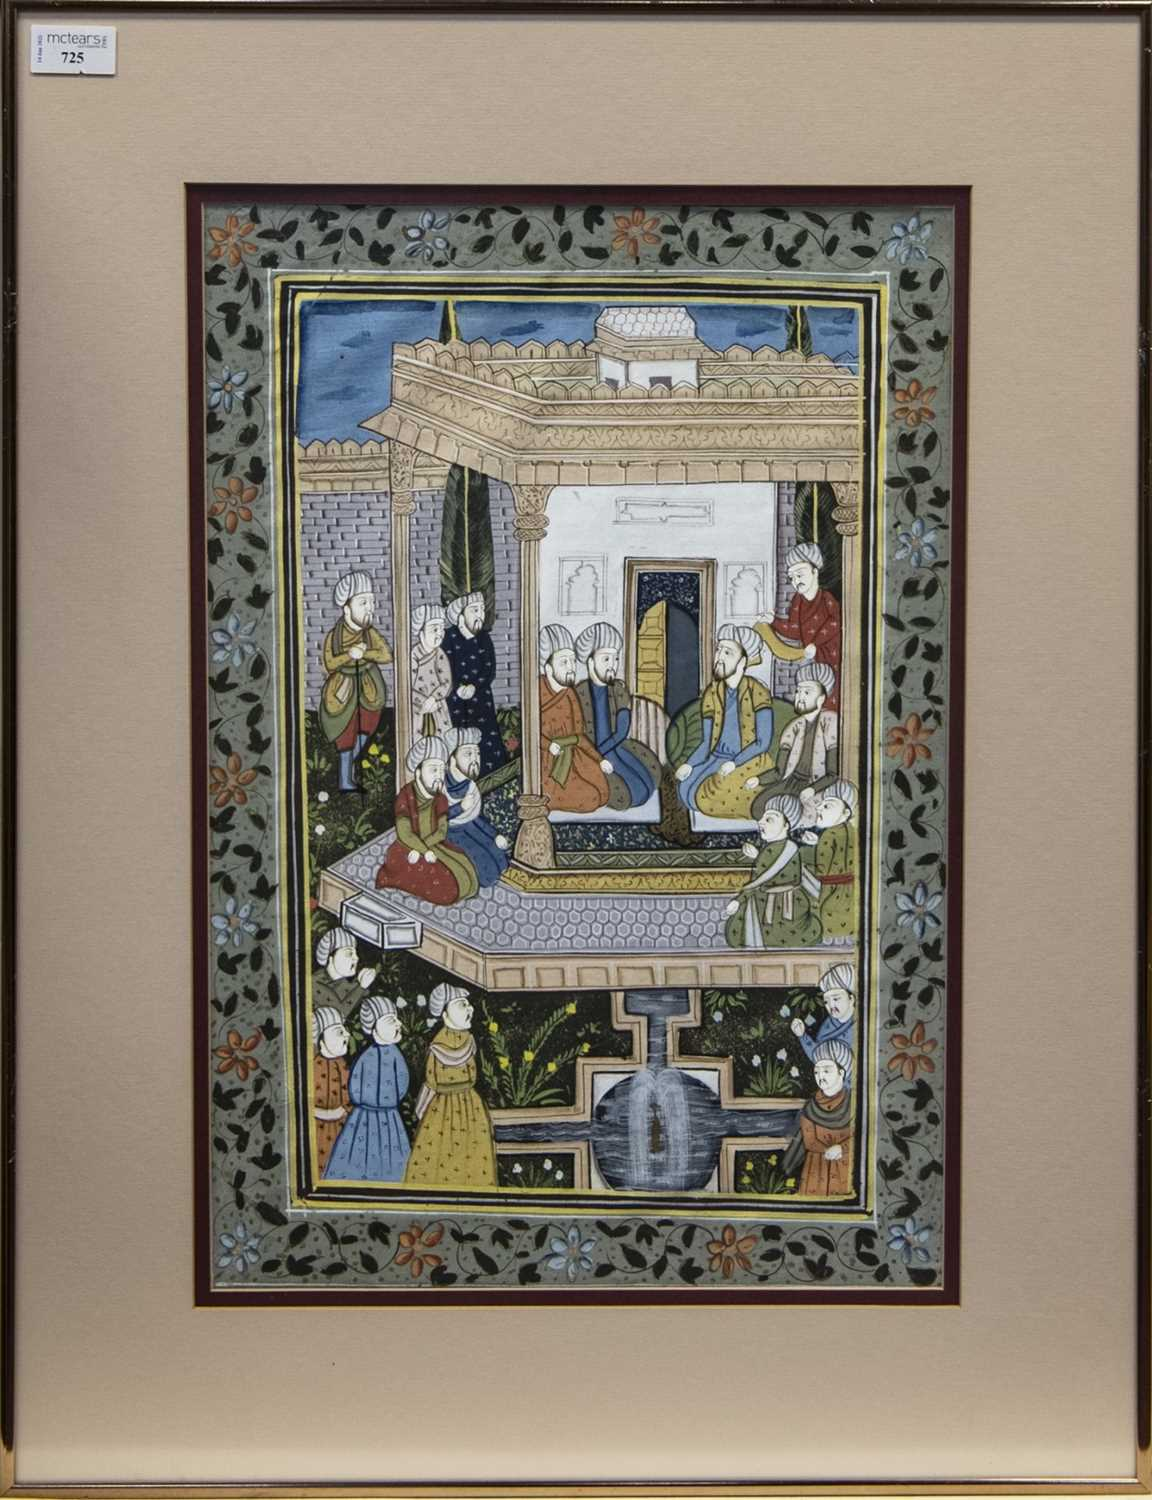 Lot 725 - A 20TH CENTURY INDIAN PAINTING ON FABRIC